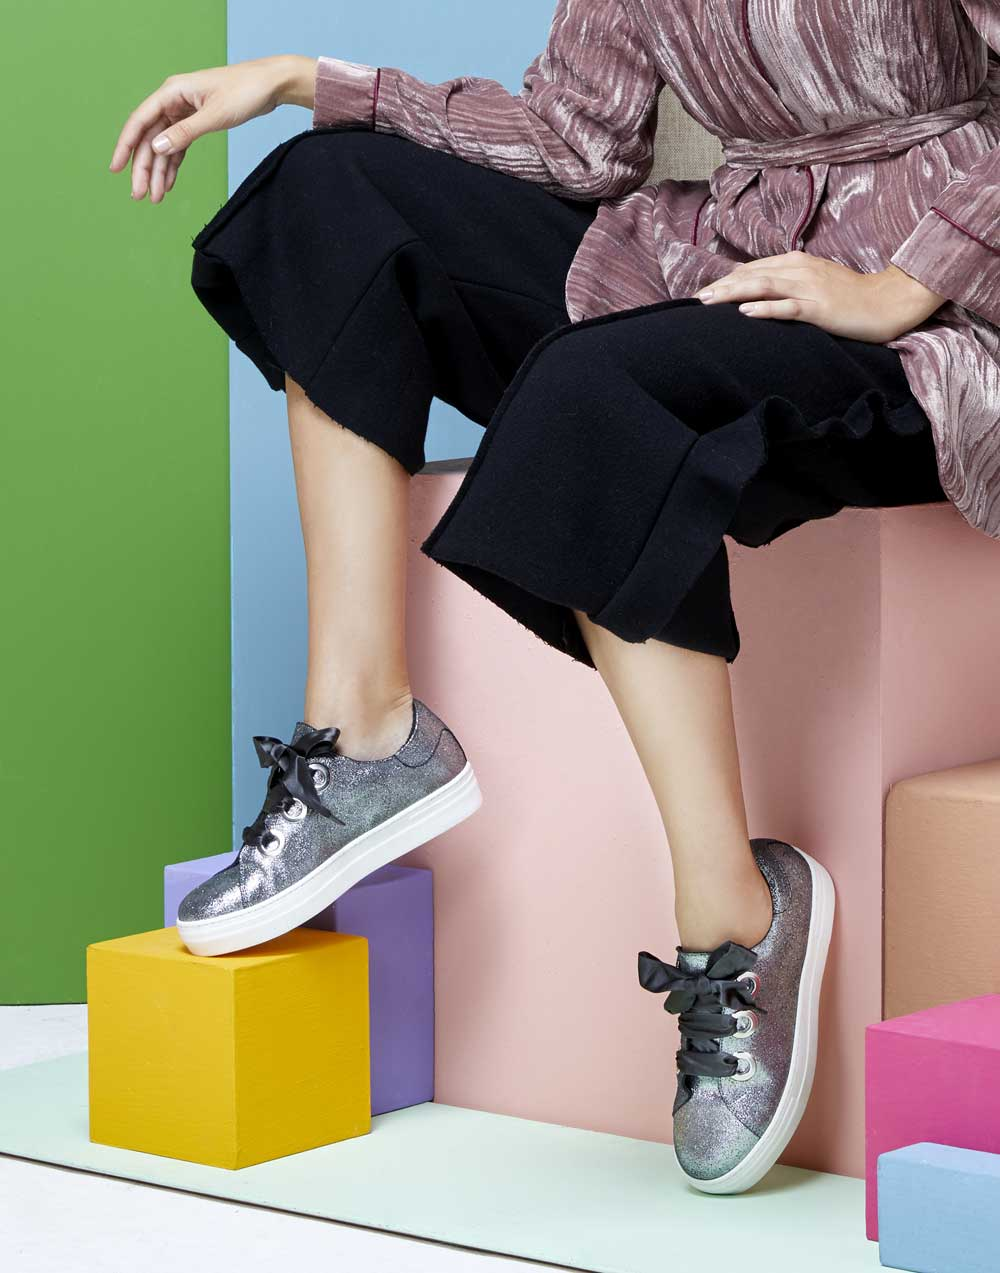 Bata Italia Advertising Fashion photography Campaign 2019